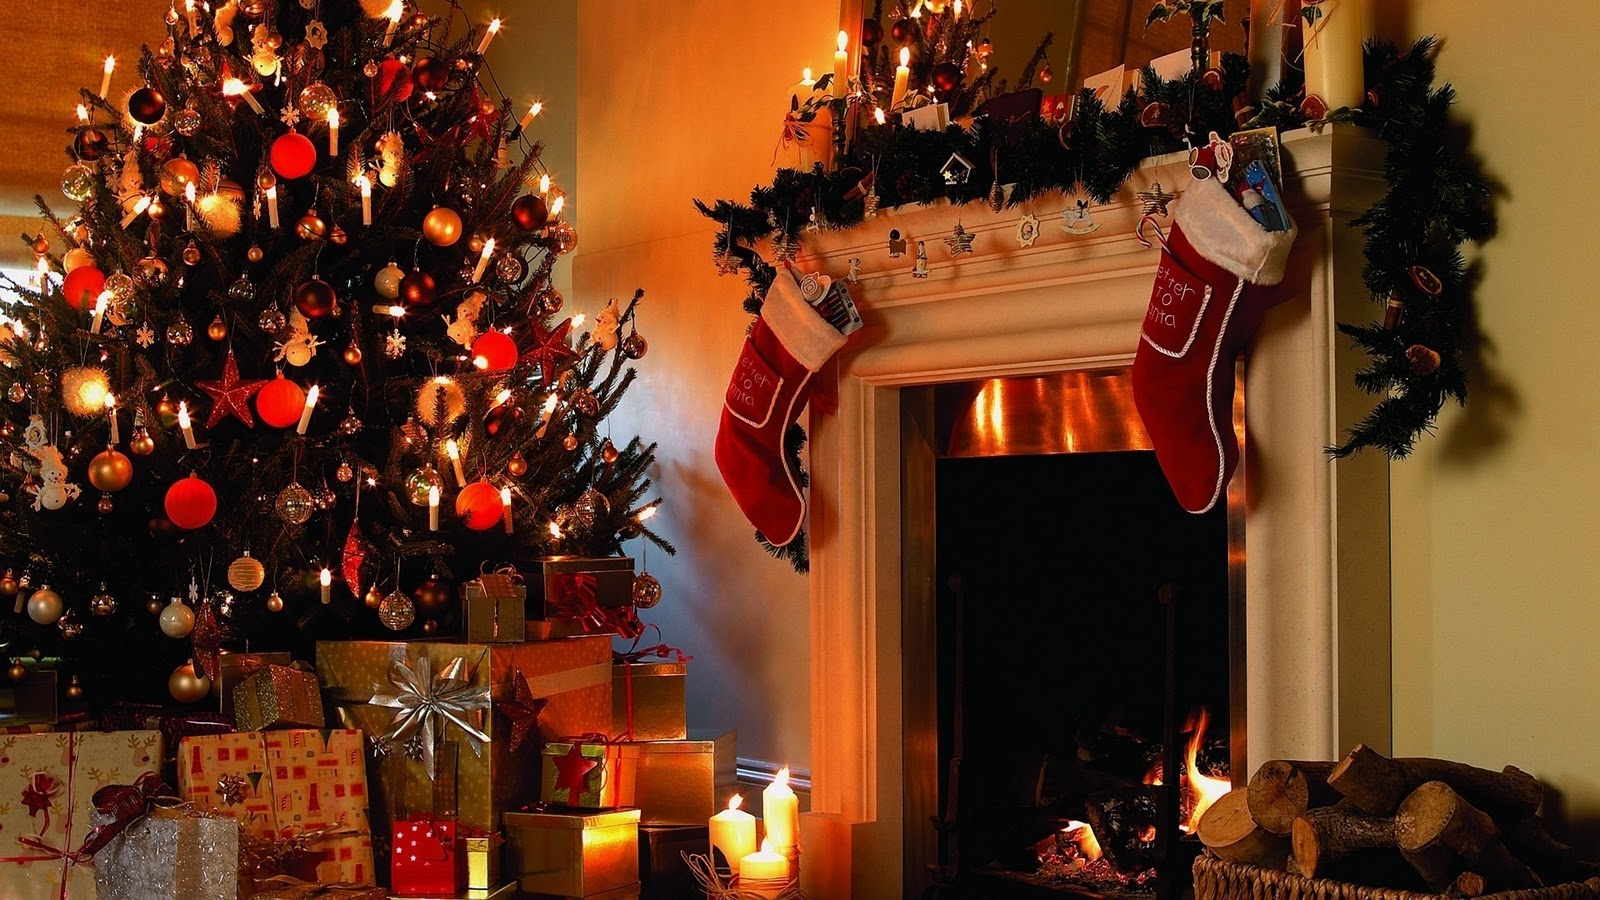 IRBOB SEVENFOLD Christmas Tree and Fireplace wallpaper 1600x900